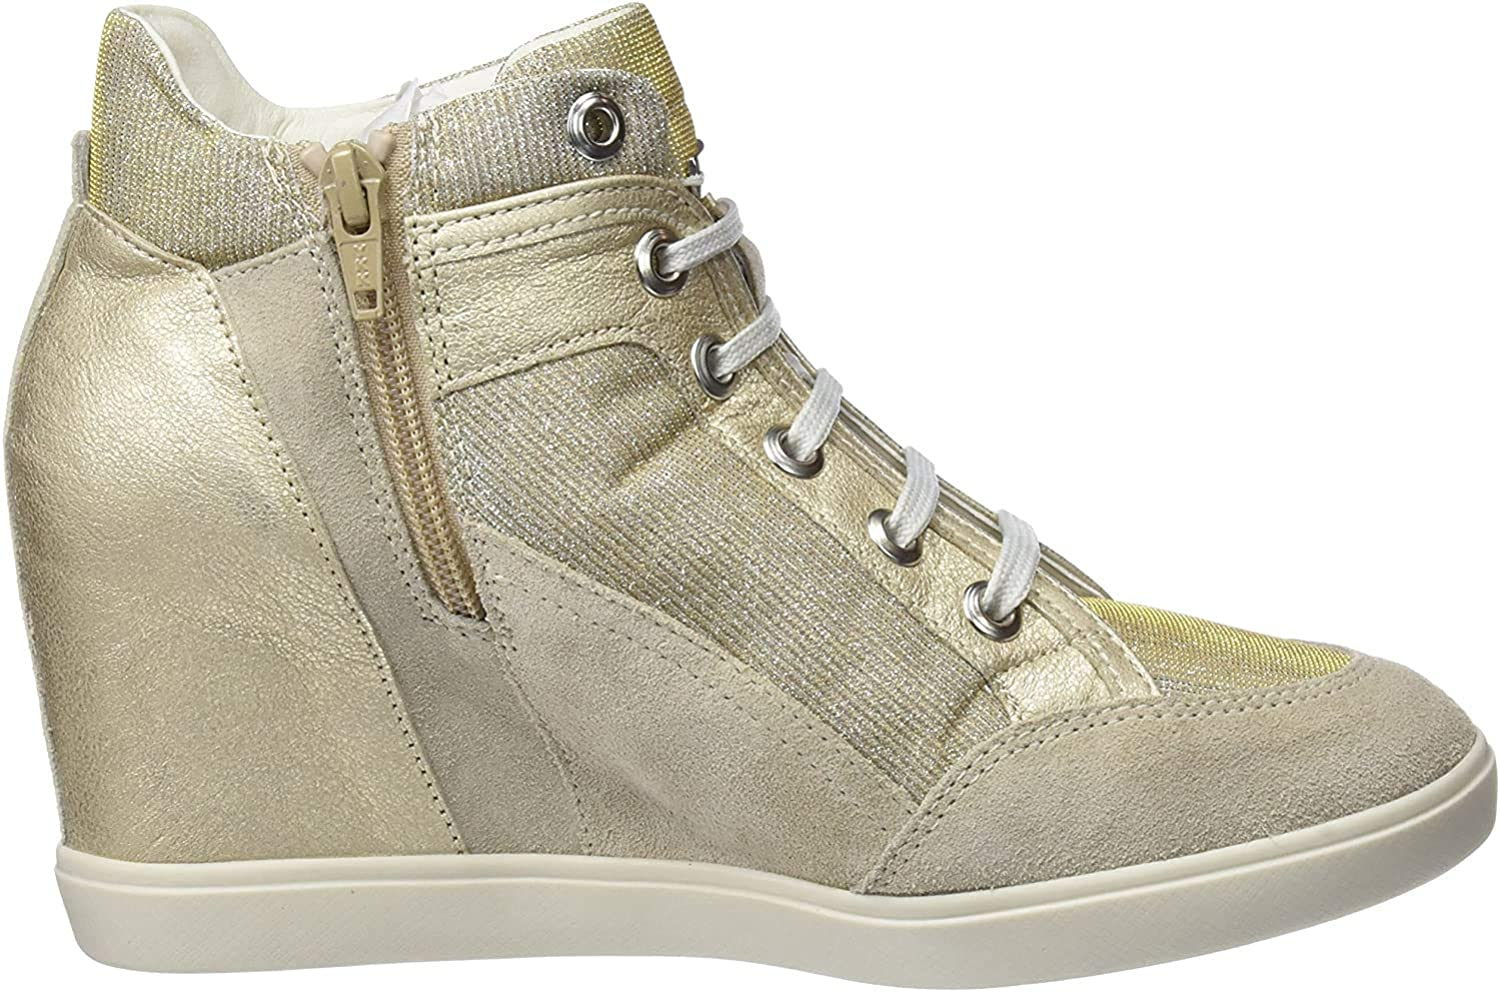 Womens Suede Wedge Sneakers/Boots